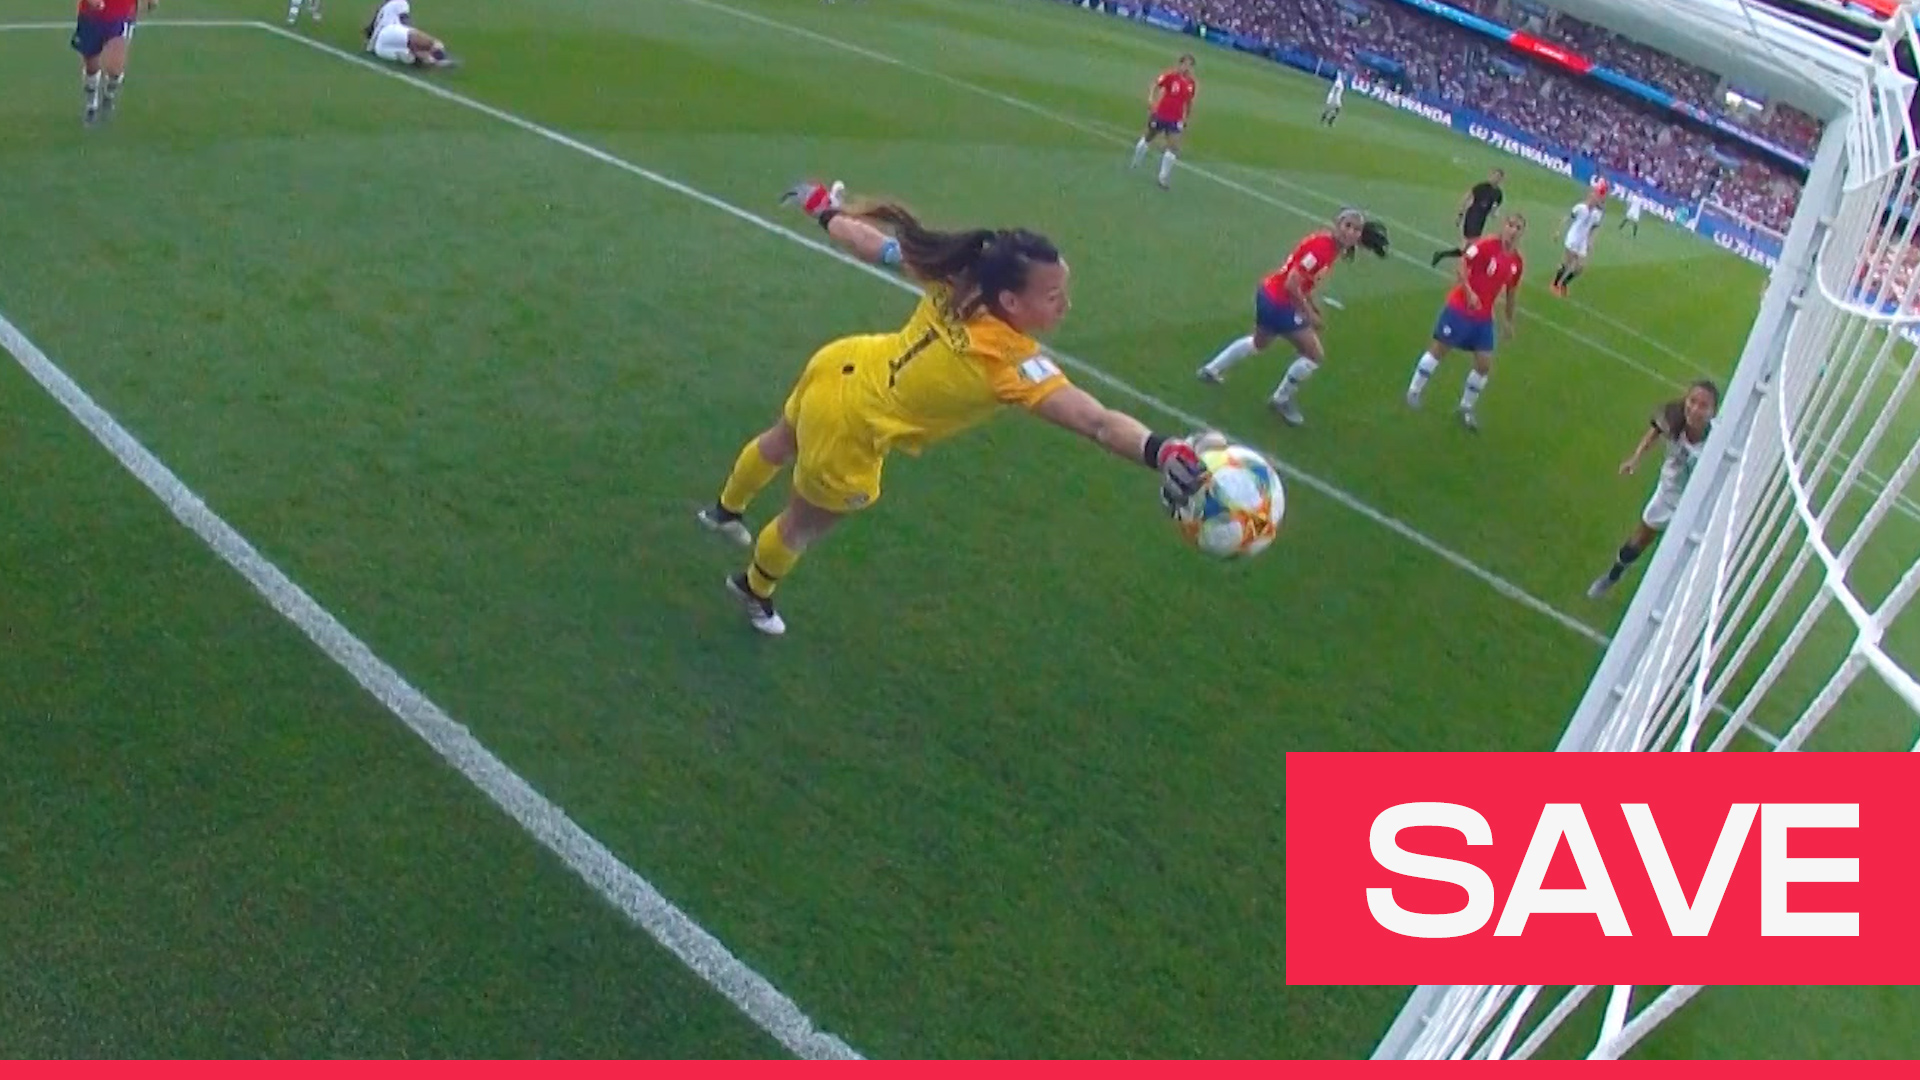 Women's World Cup 2019: Christiane Endler produces spectacular save v USA